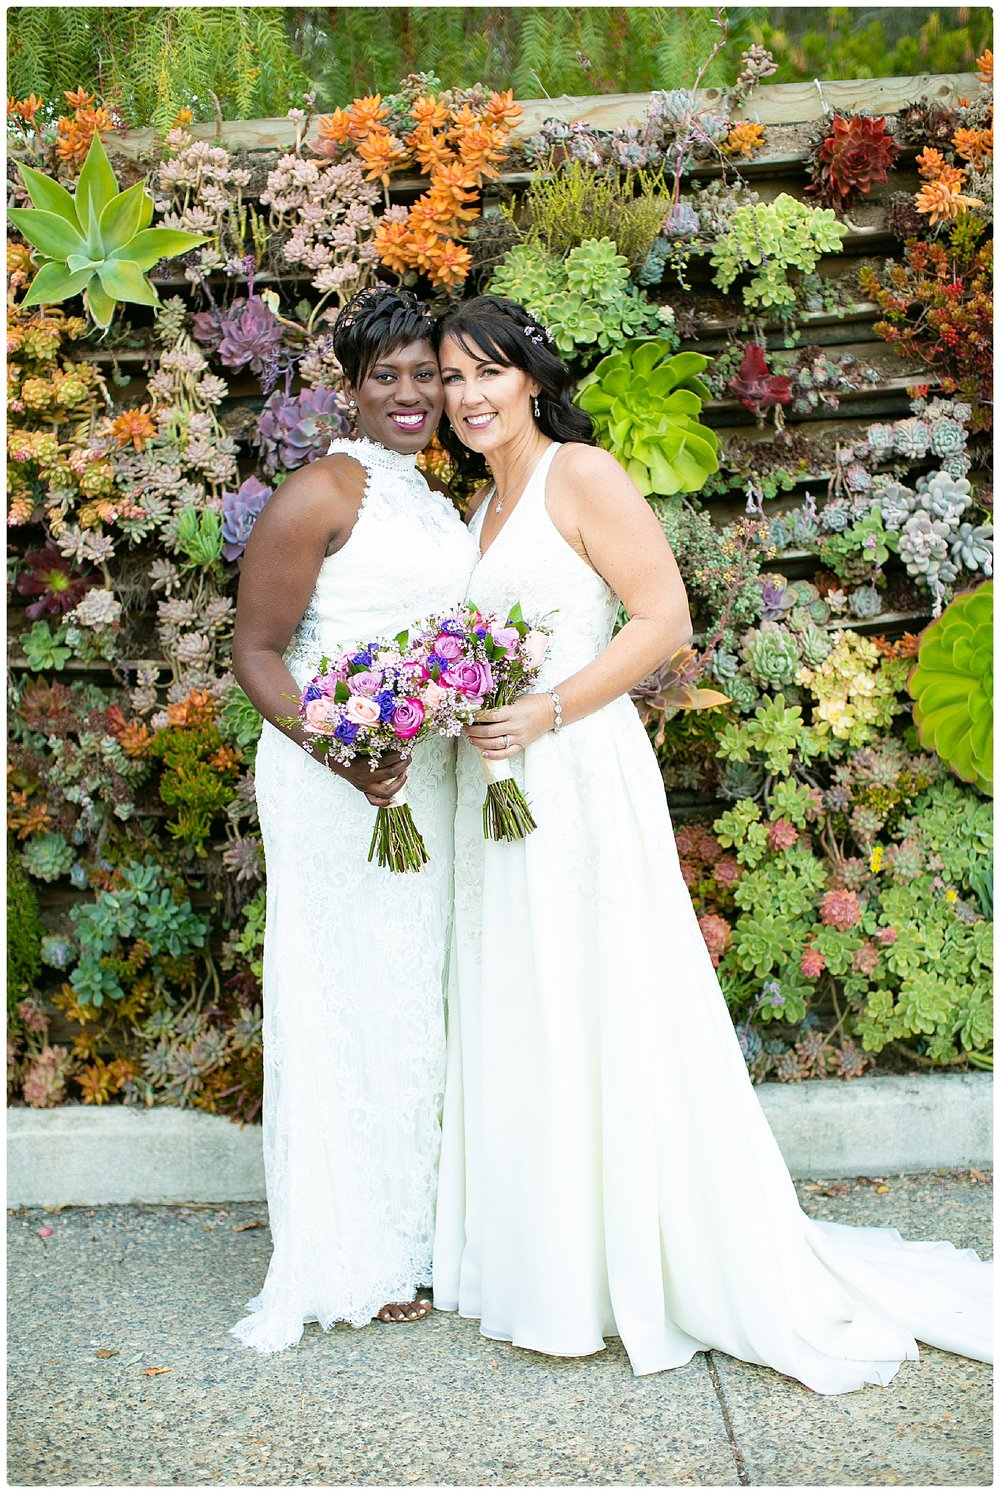 New Years Eve intimate wedding_Renoda Campbell Photography_LGBT wedding_0075.jpg